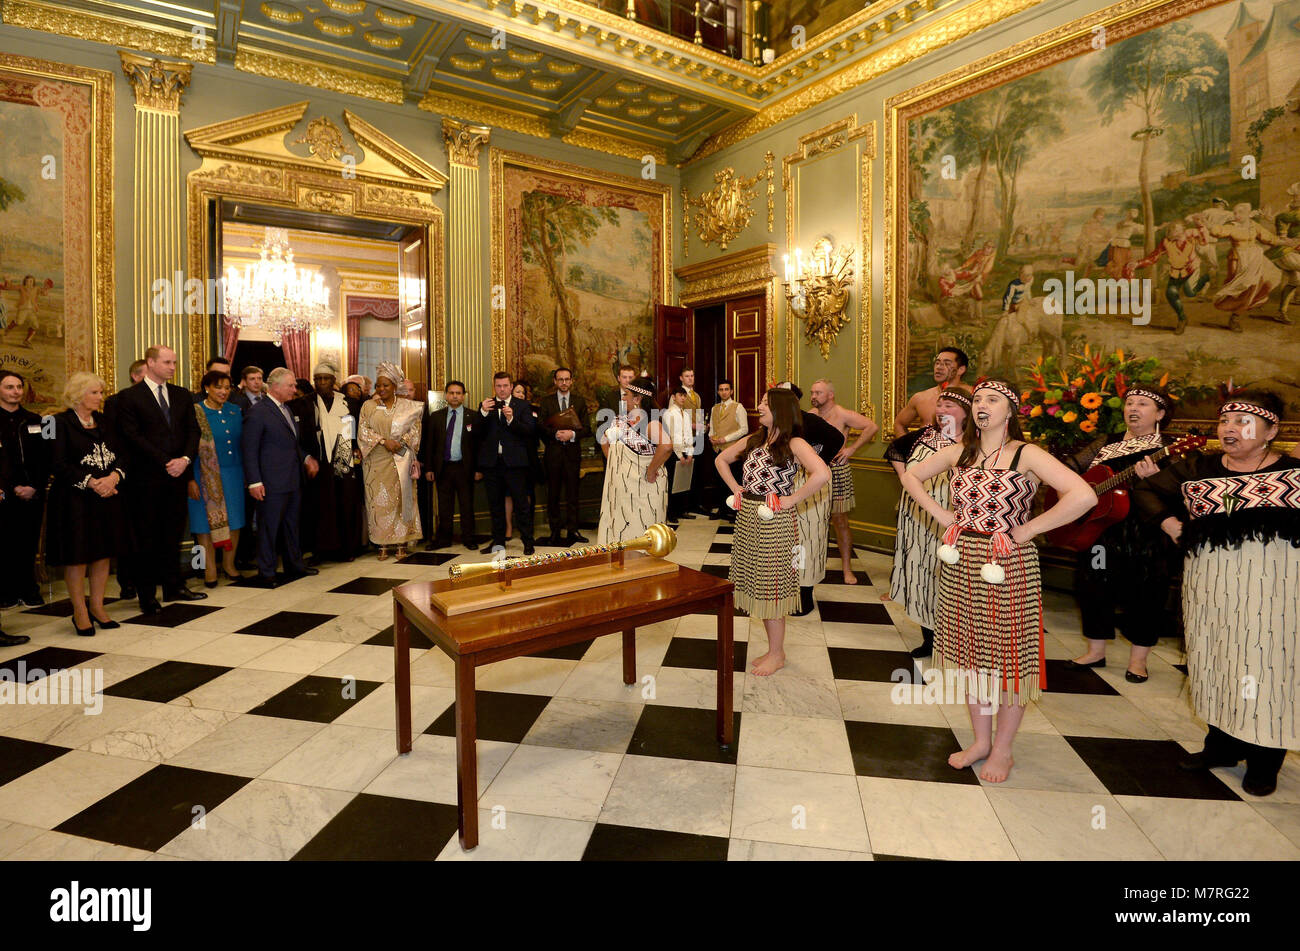 Guests enjoy a performance at a reception held at Marlborough House, the home of the Commonwealth Secretariat in Stock Photo